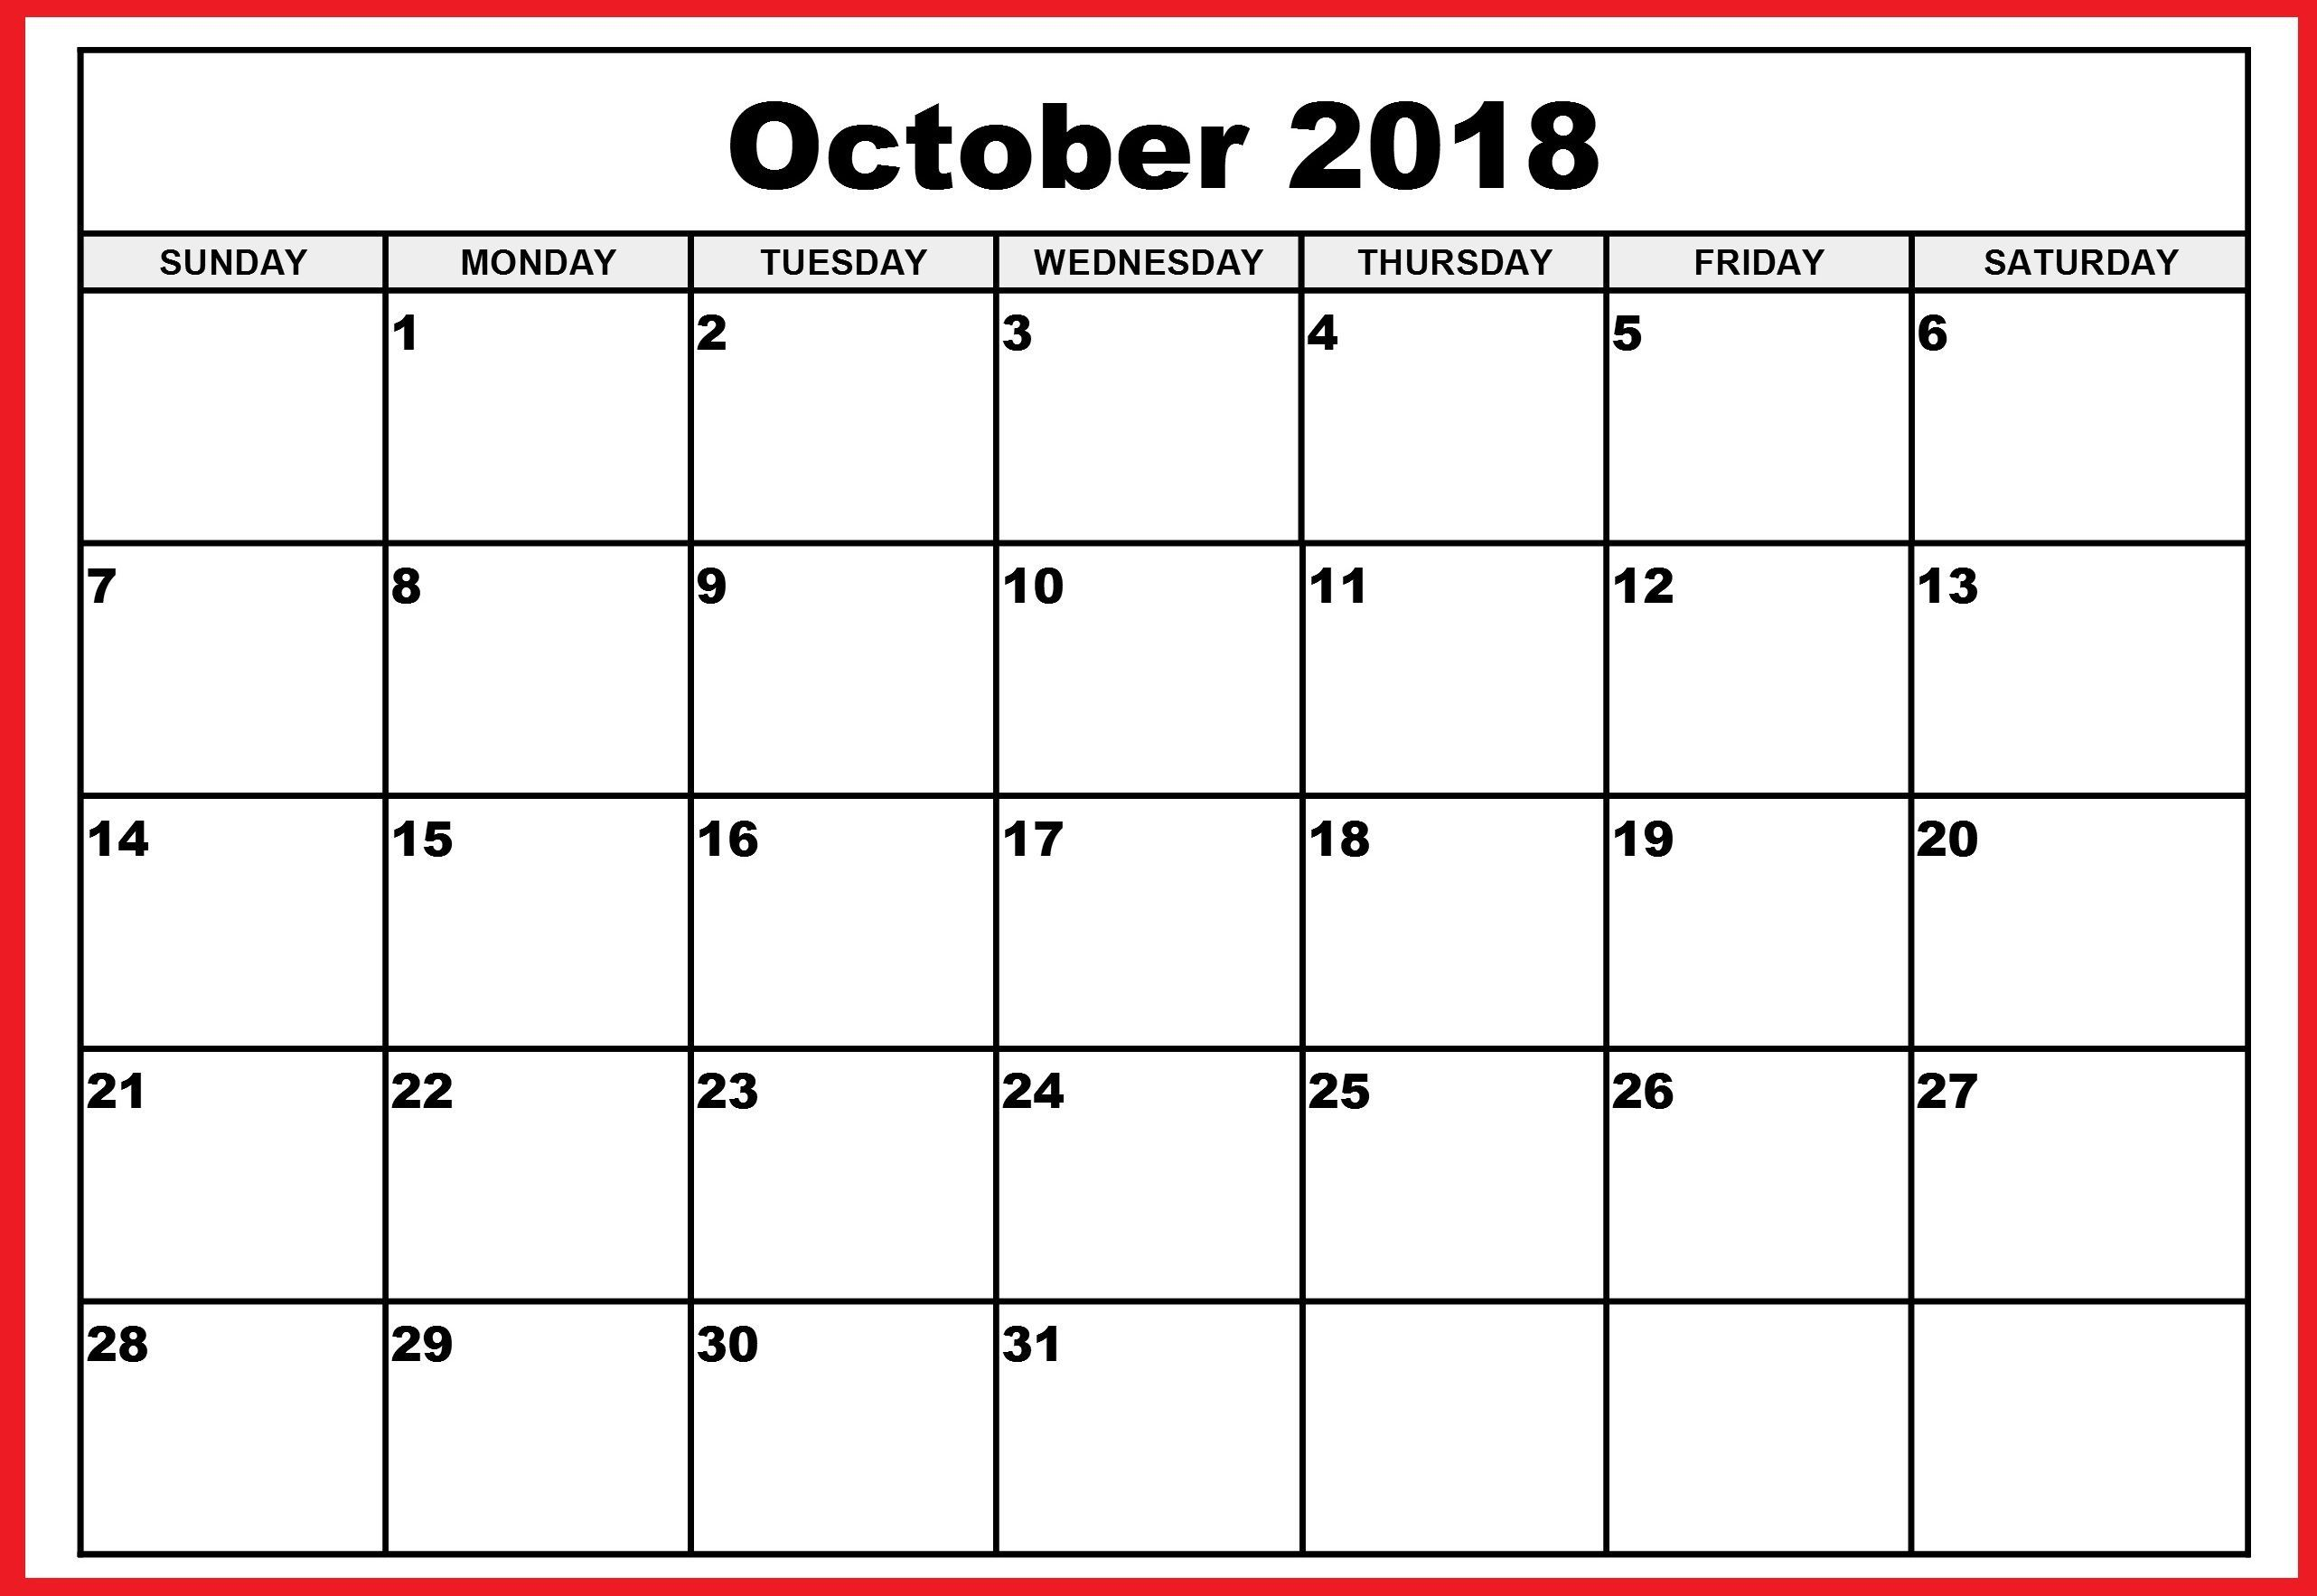 001 Top Calendar Template October 2018 Word Picture Full